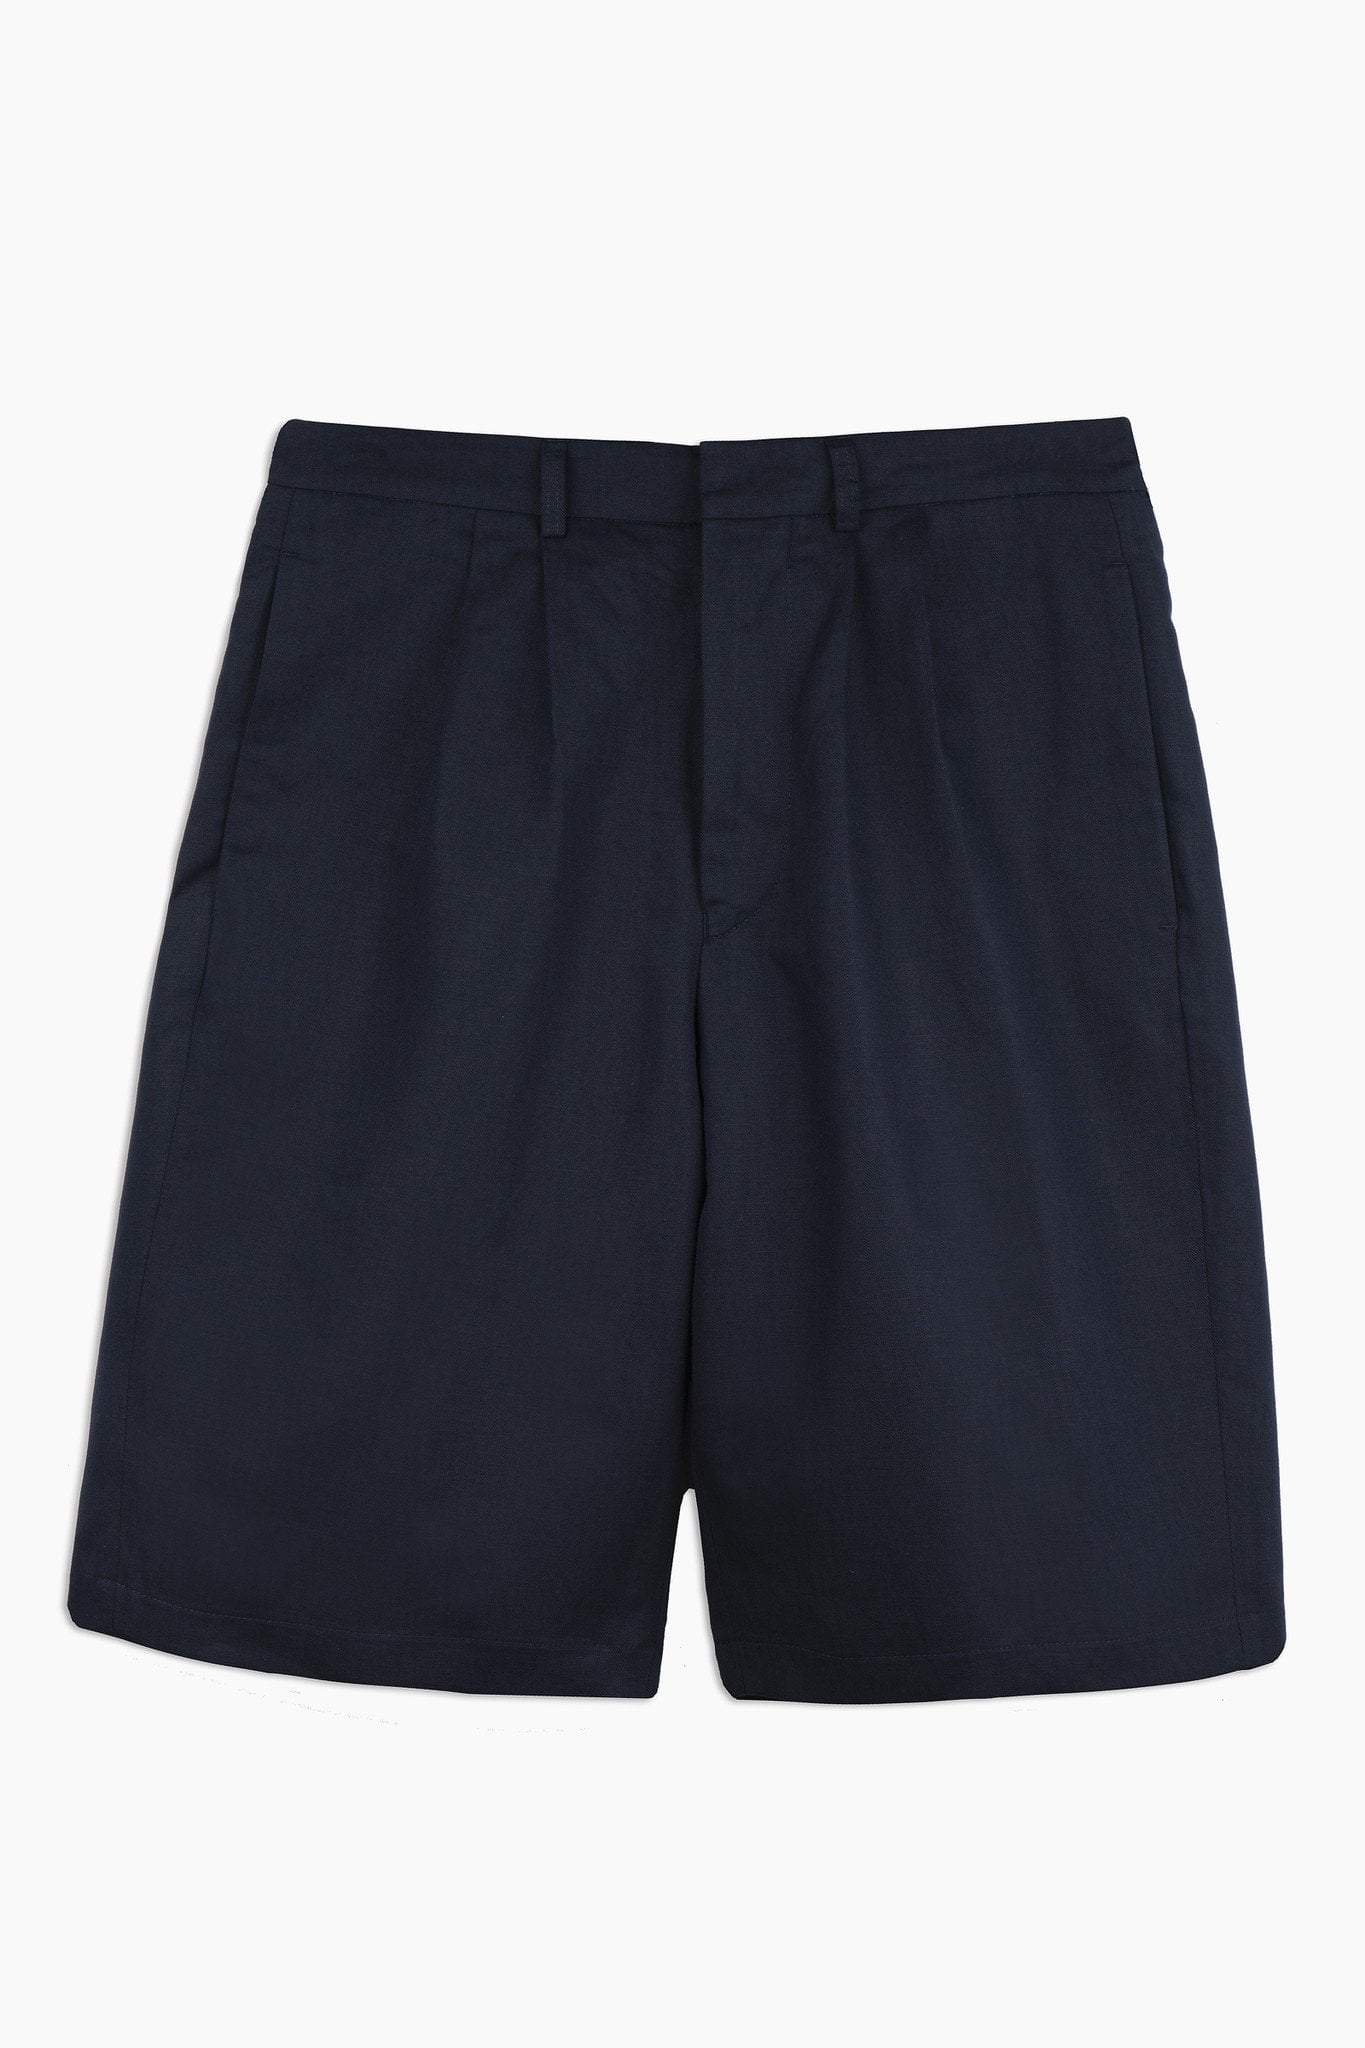 Short Markus – dark navy